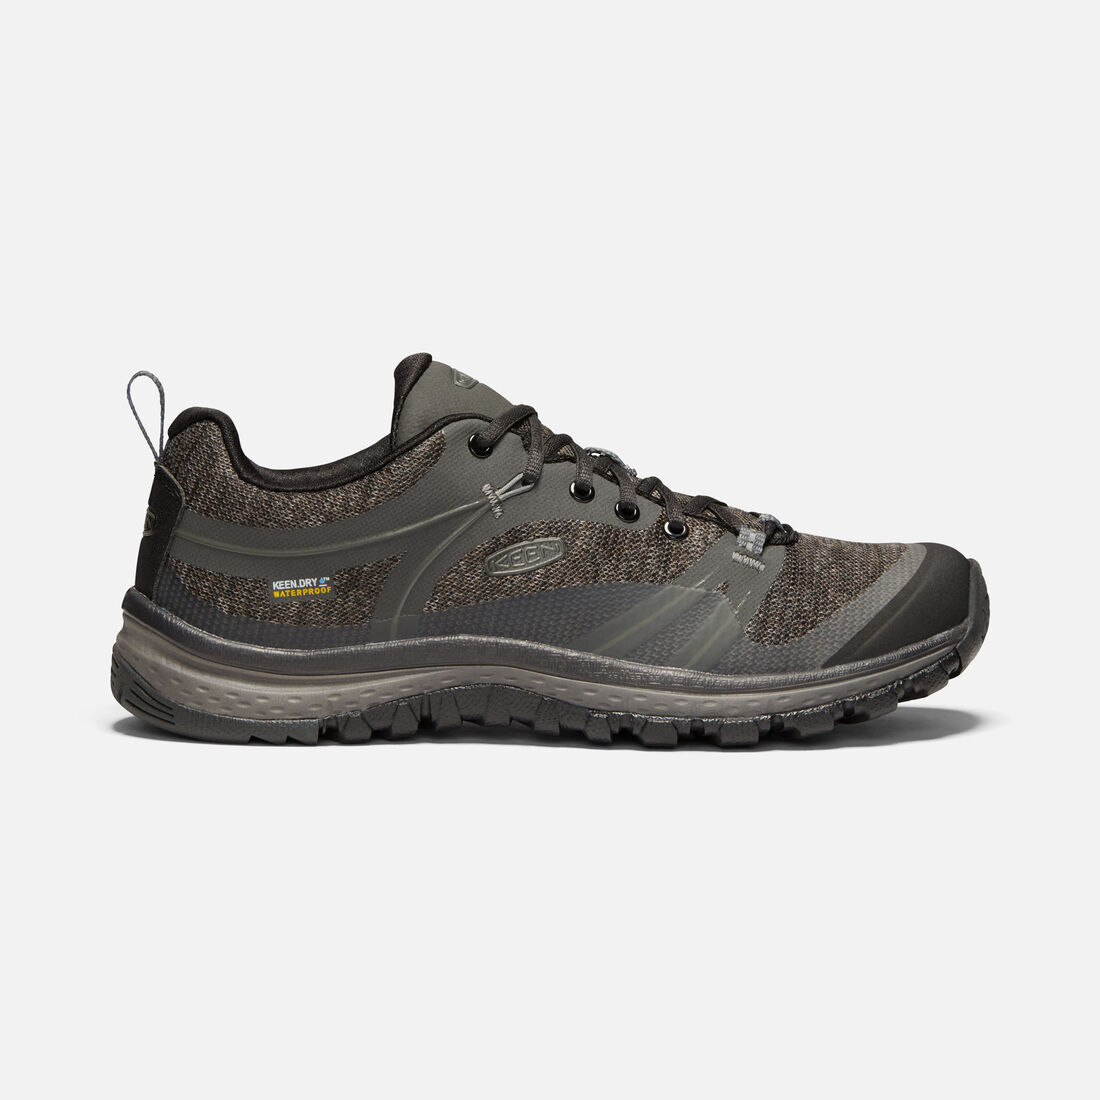 Women's TERRADORA Waterproof in RAVEN/GARGOYLE - large view.